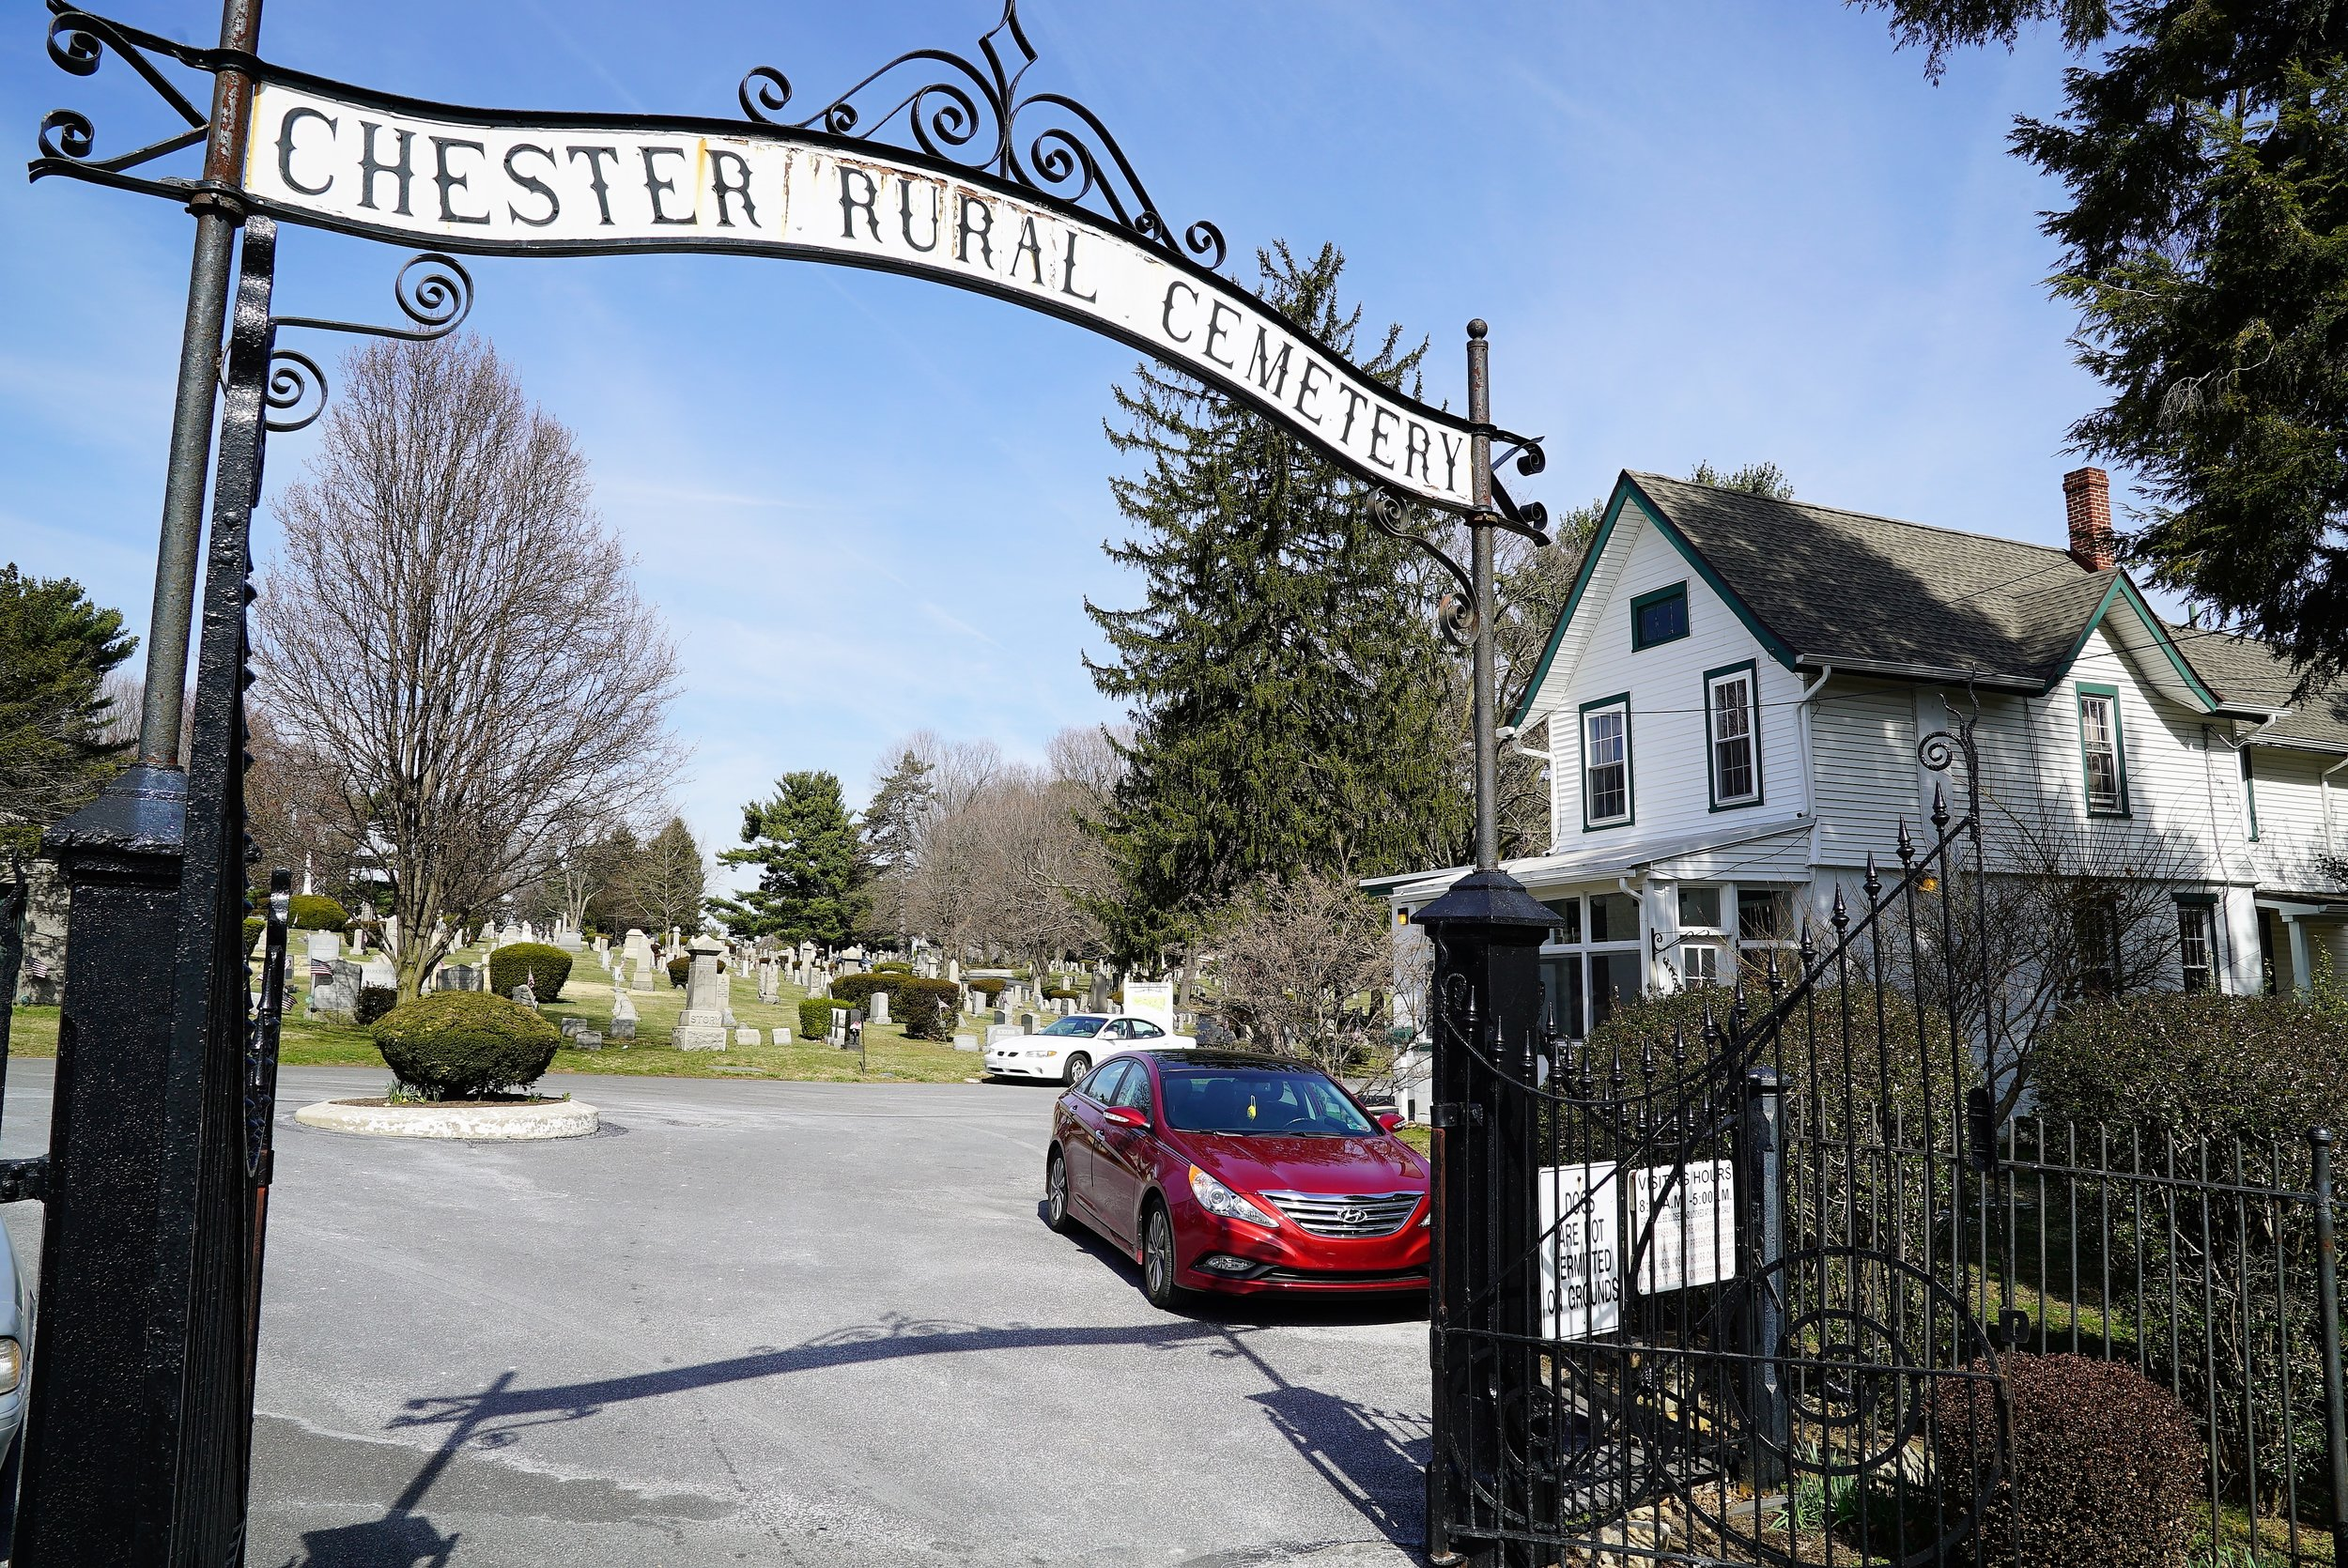 Main entrance to Chester Rural Cemetery, Chester, Pennsylvania.